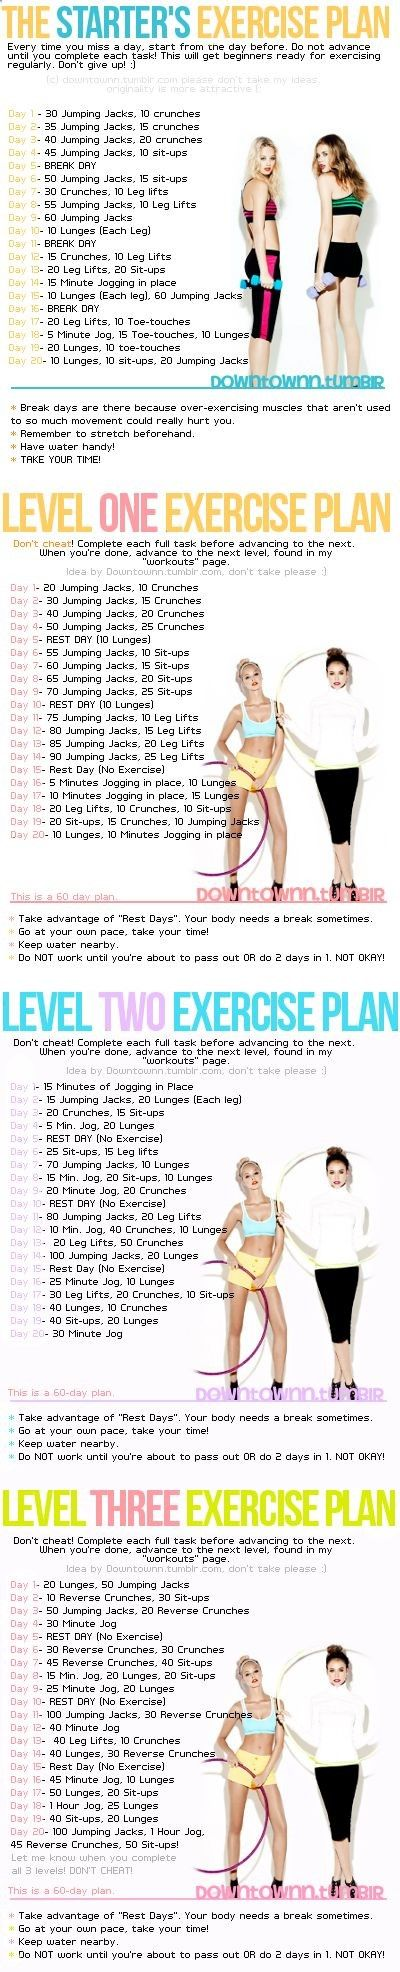 The best weight loss exercise plan. For more visit website :: bellastwist.com/... Tap the link now to see where the world's leading interior designers purchase their beautifully crafted, hand picked kitchen, bath and bar and prep faucets to outfit their u